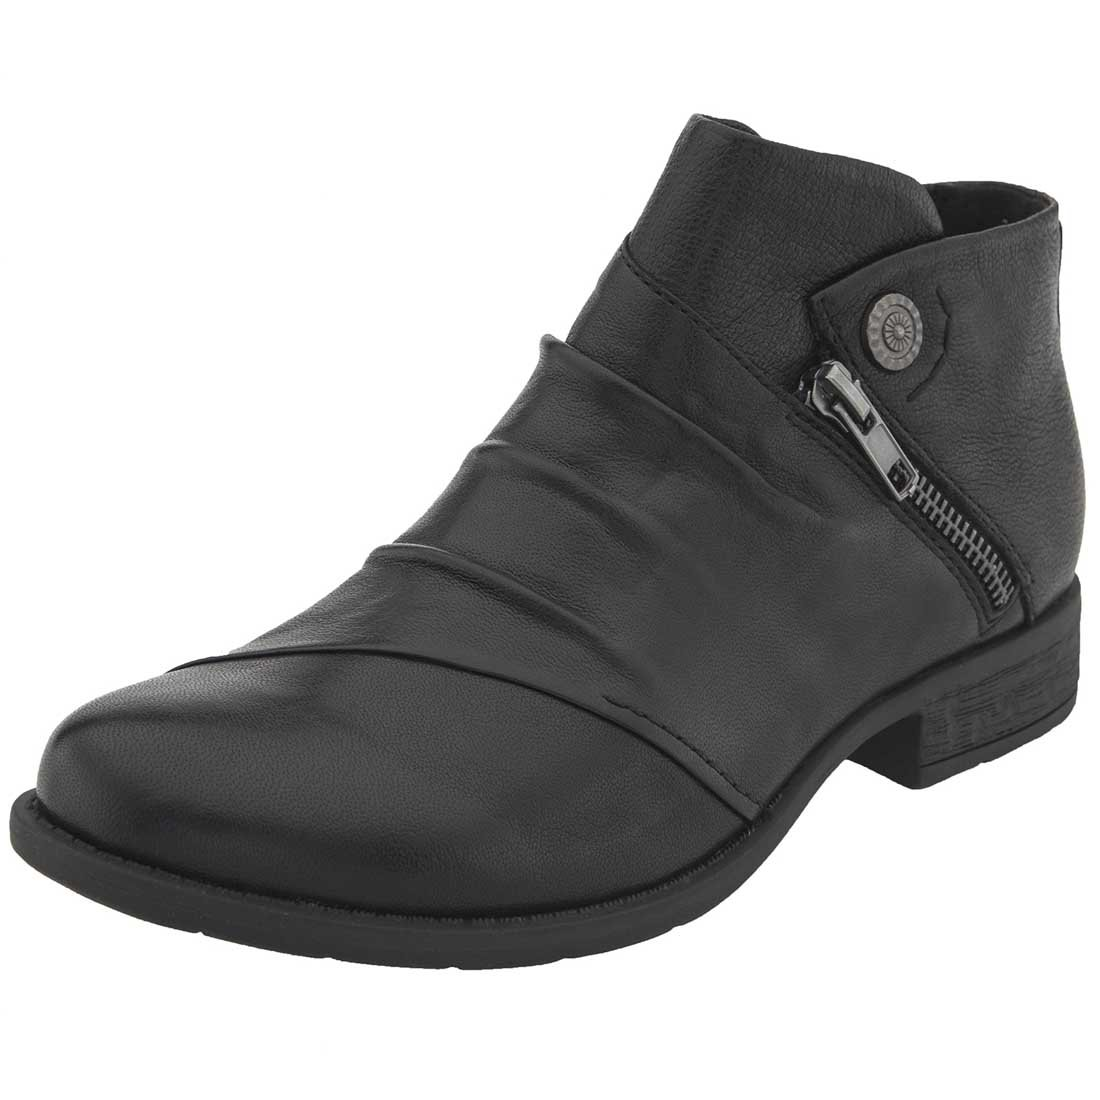 Earth Womens Ronan Closed Toe Ankle Fashion Boots B005BFPE0A 7 B(M) US|Black Brush-off Leather